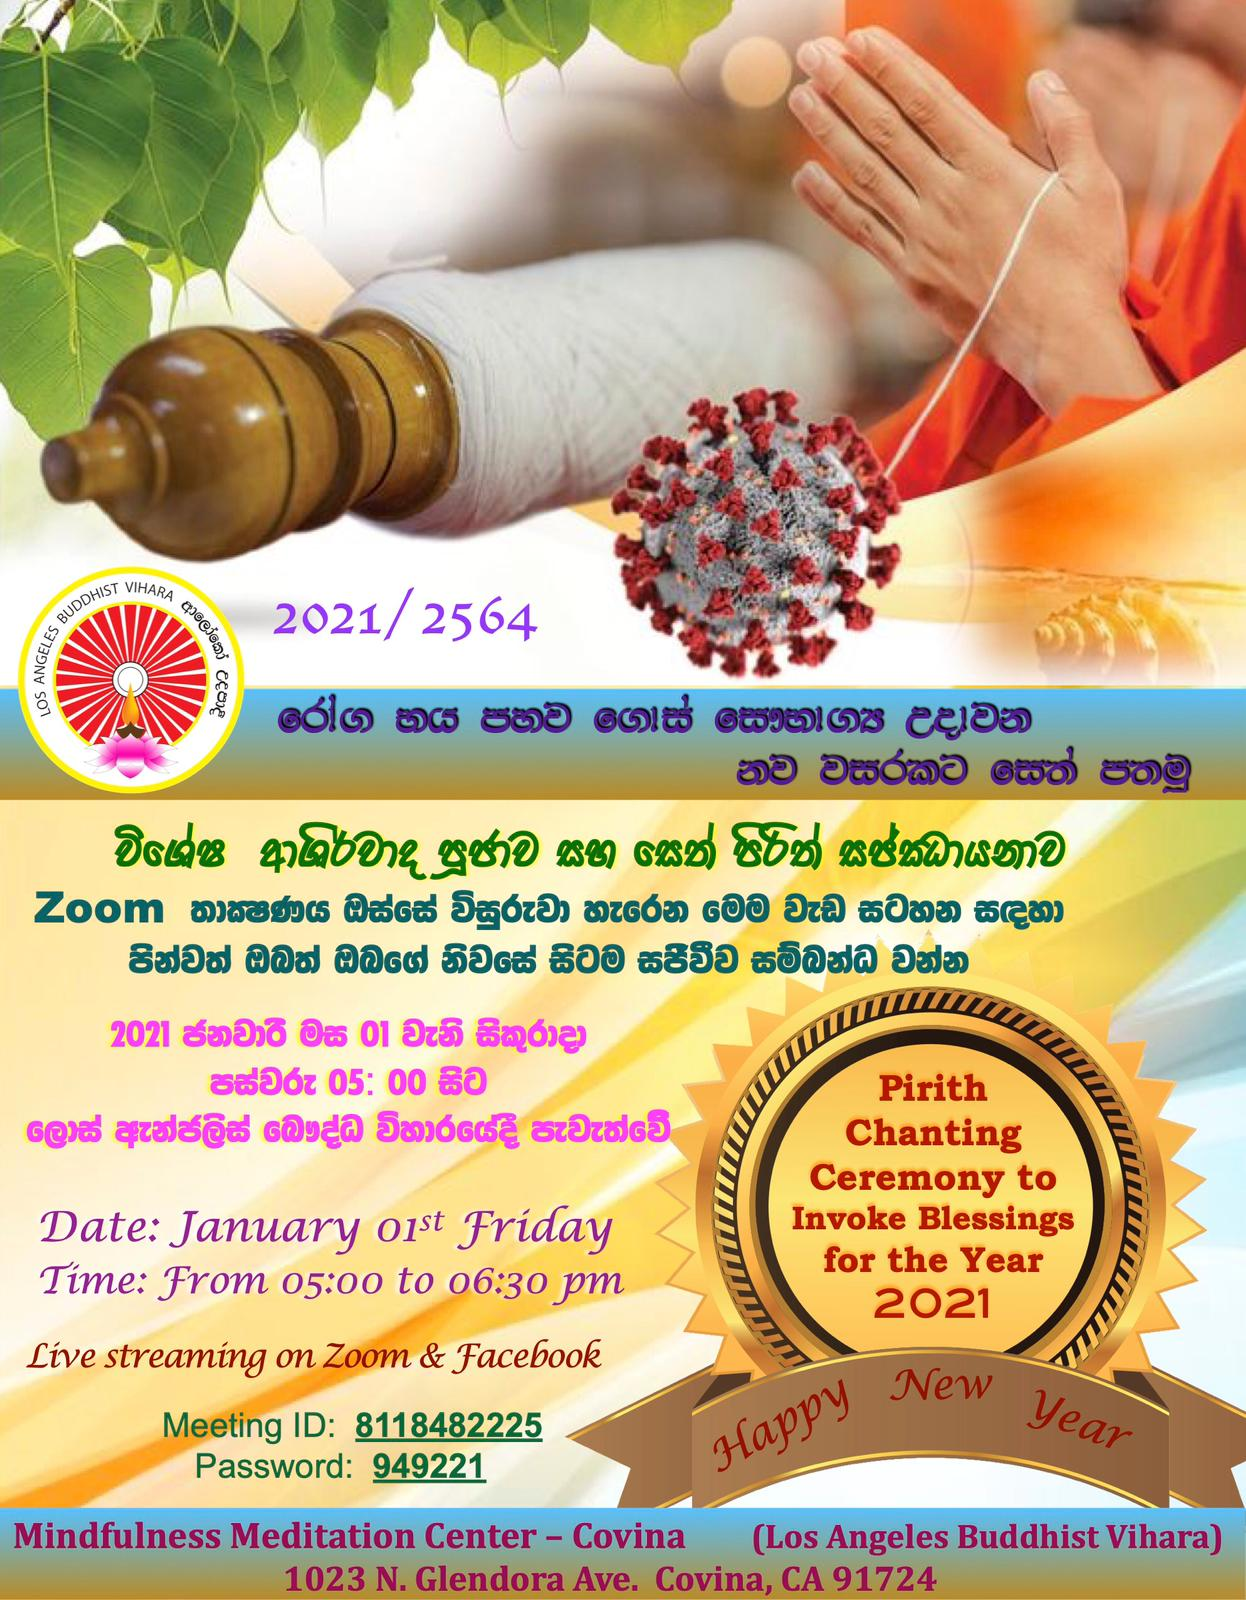 Pirith Chanting Ceremony to Invoke Blessings for the Year 2021